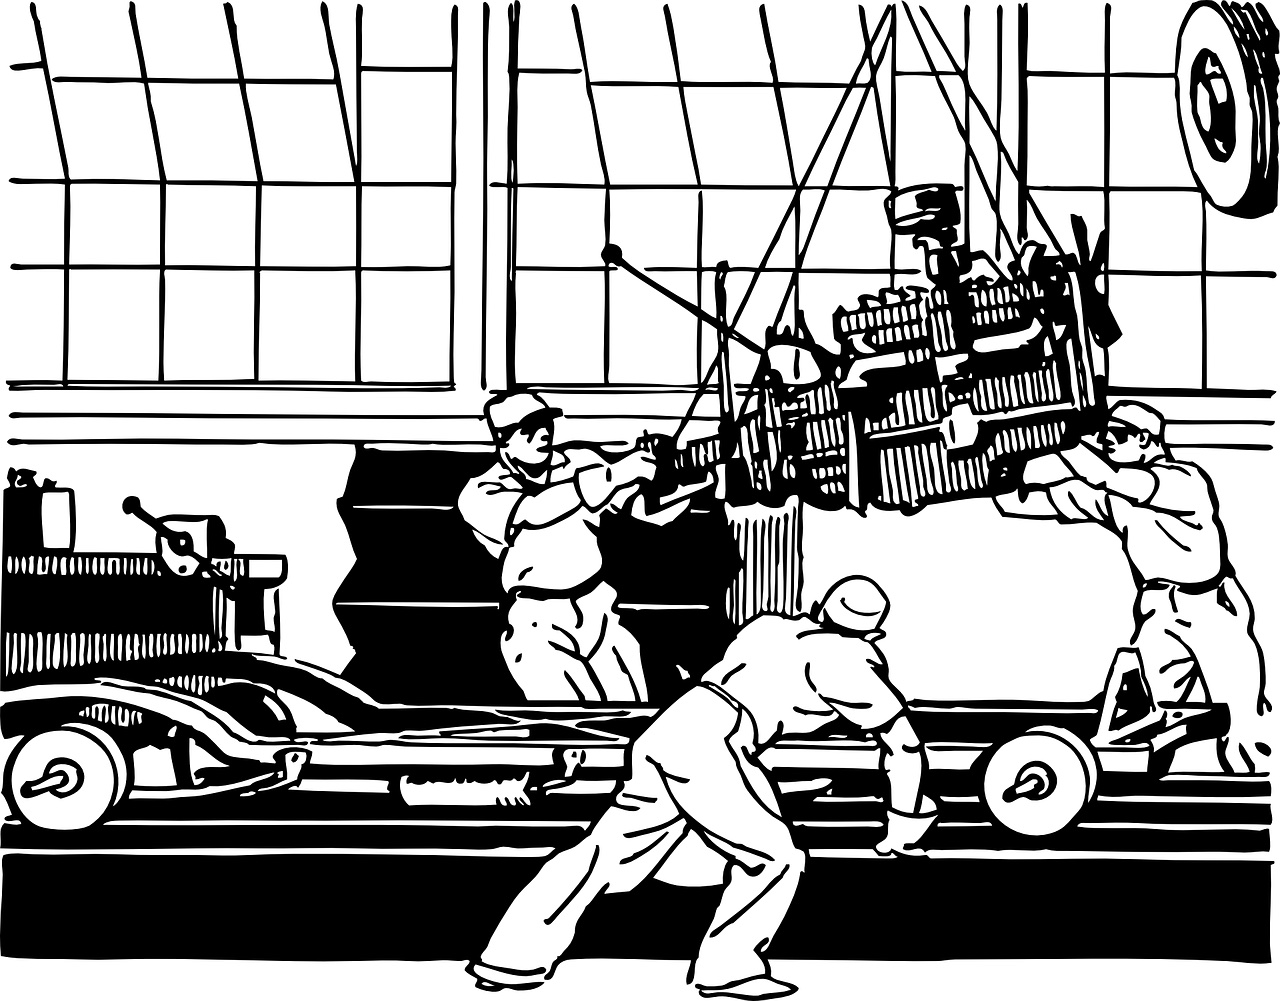 Automobile assembly line workers